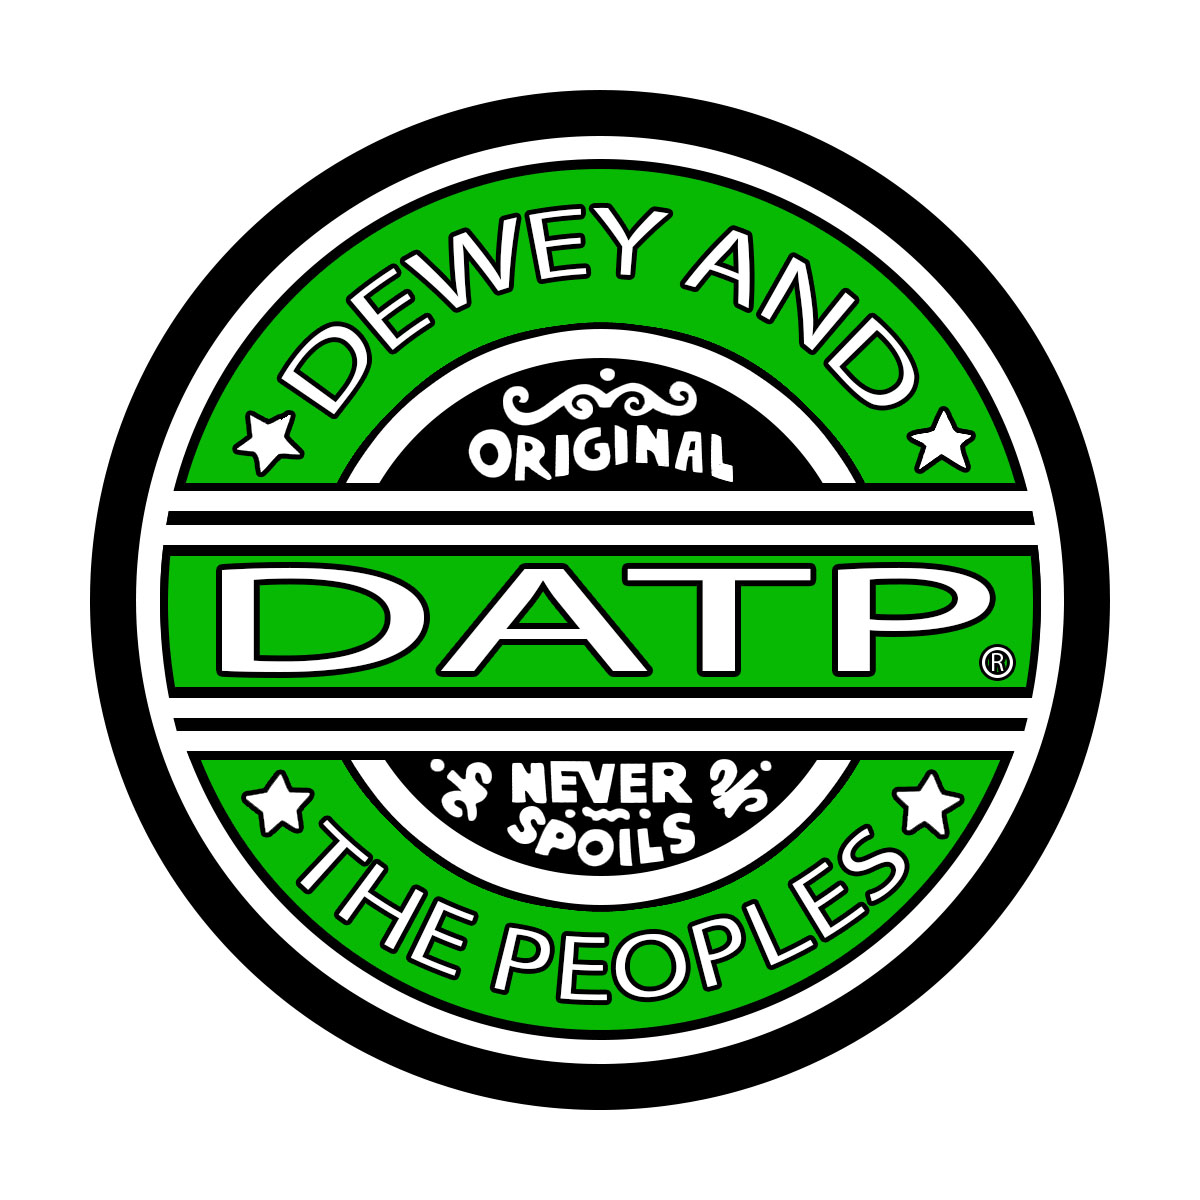 Dewey And The Peoples - Band Logo